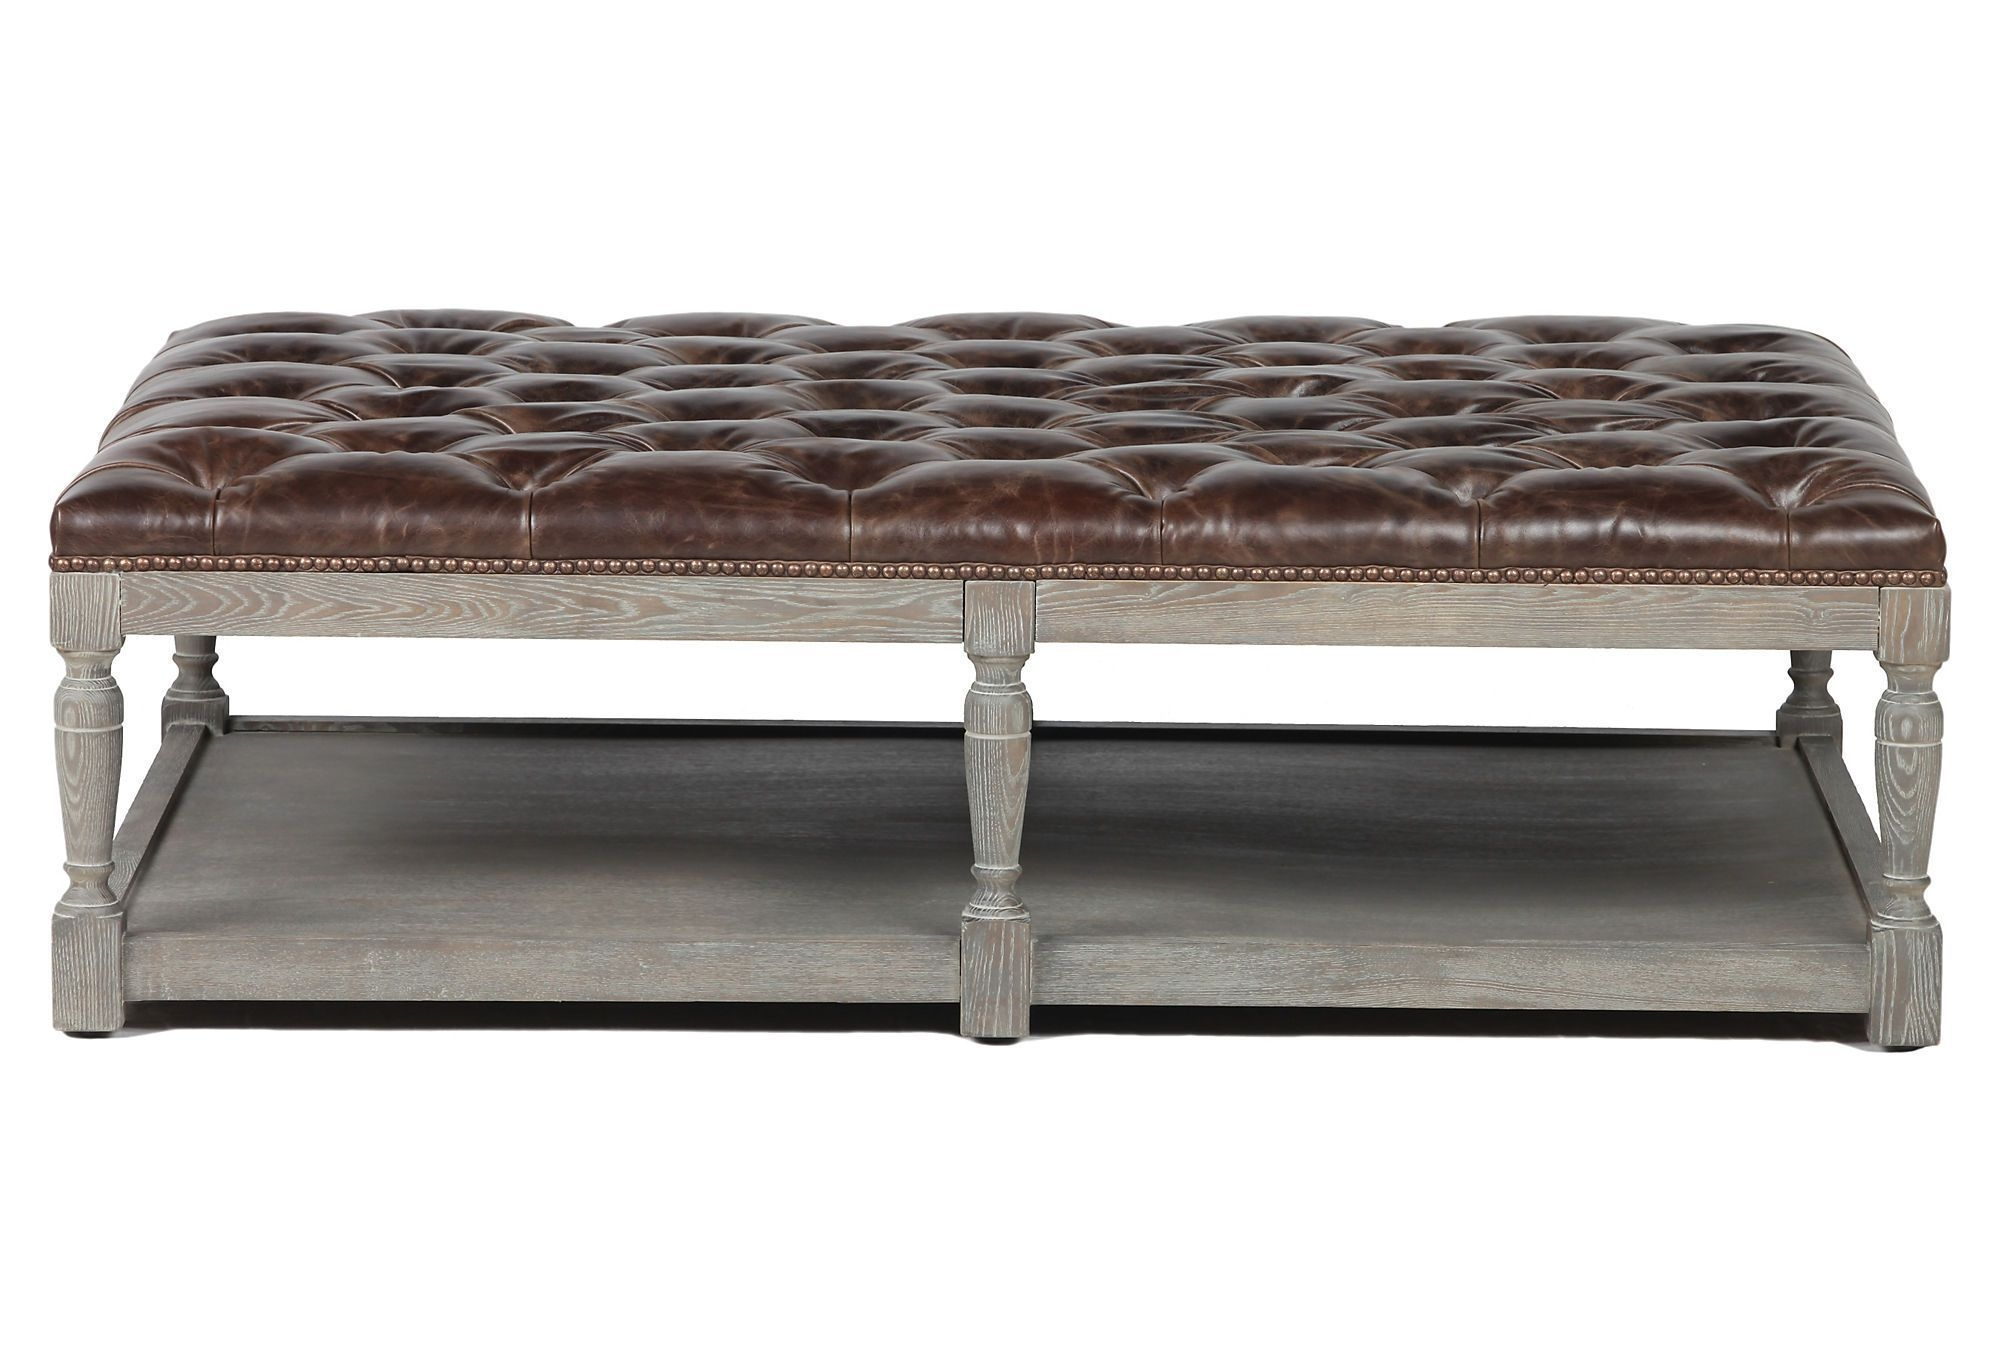 Merveilleux Leather Tufted Ottoman Coffee Table